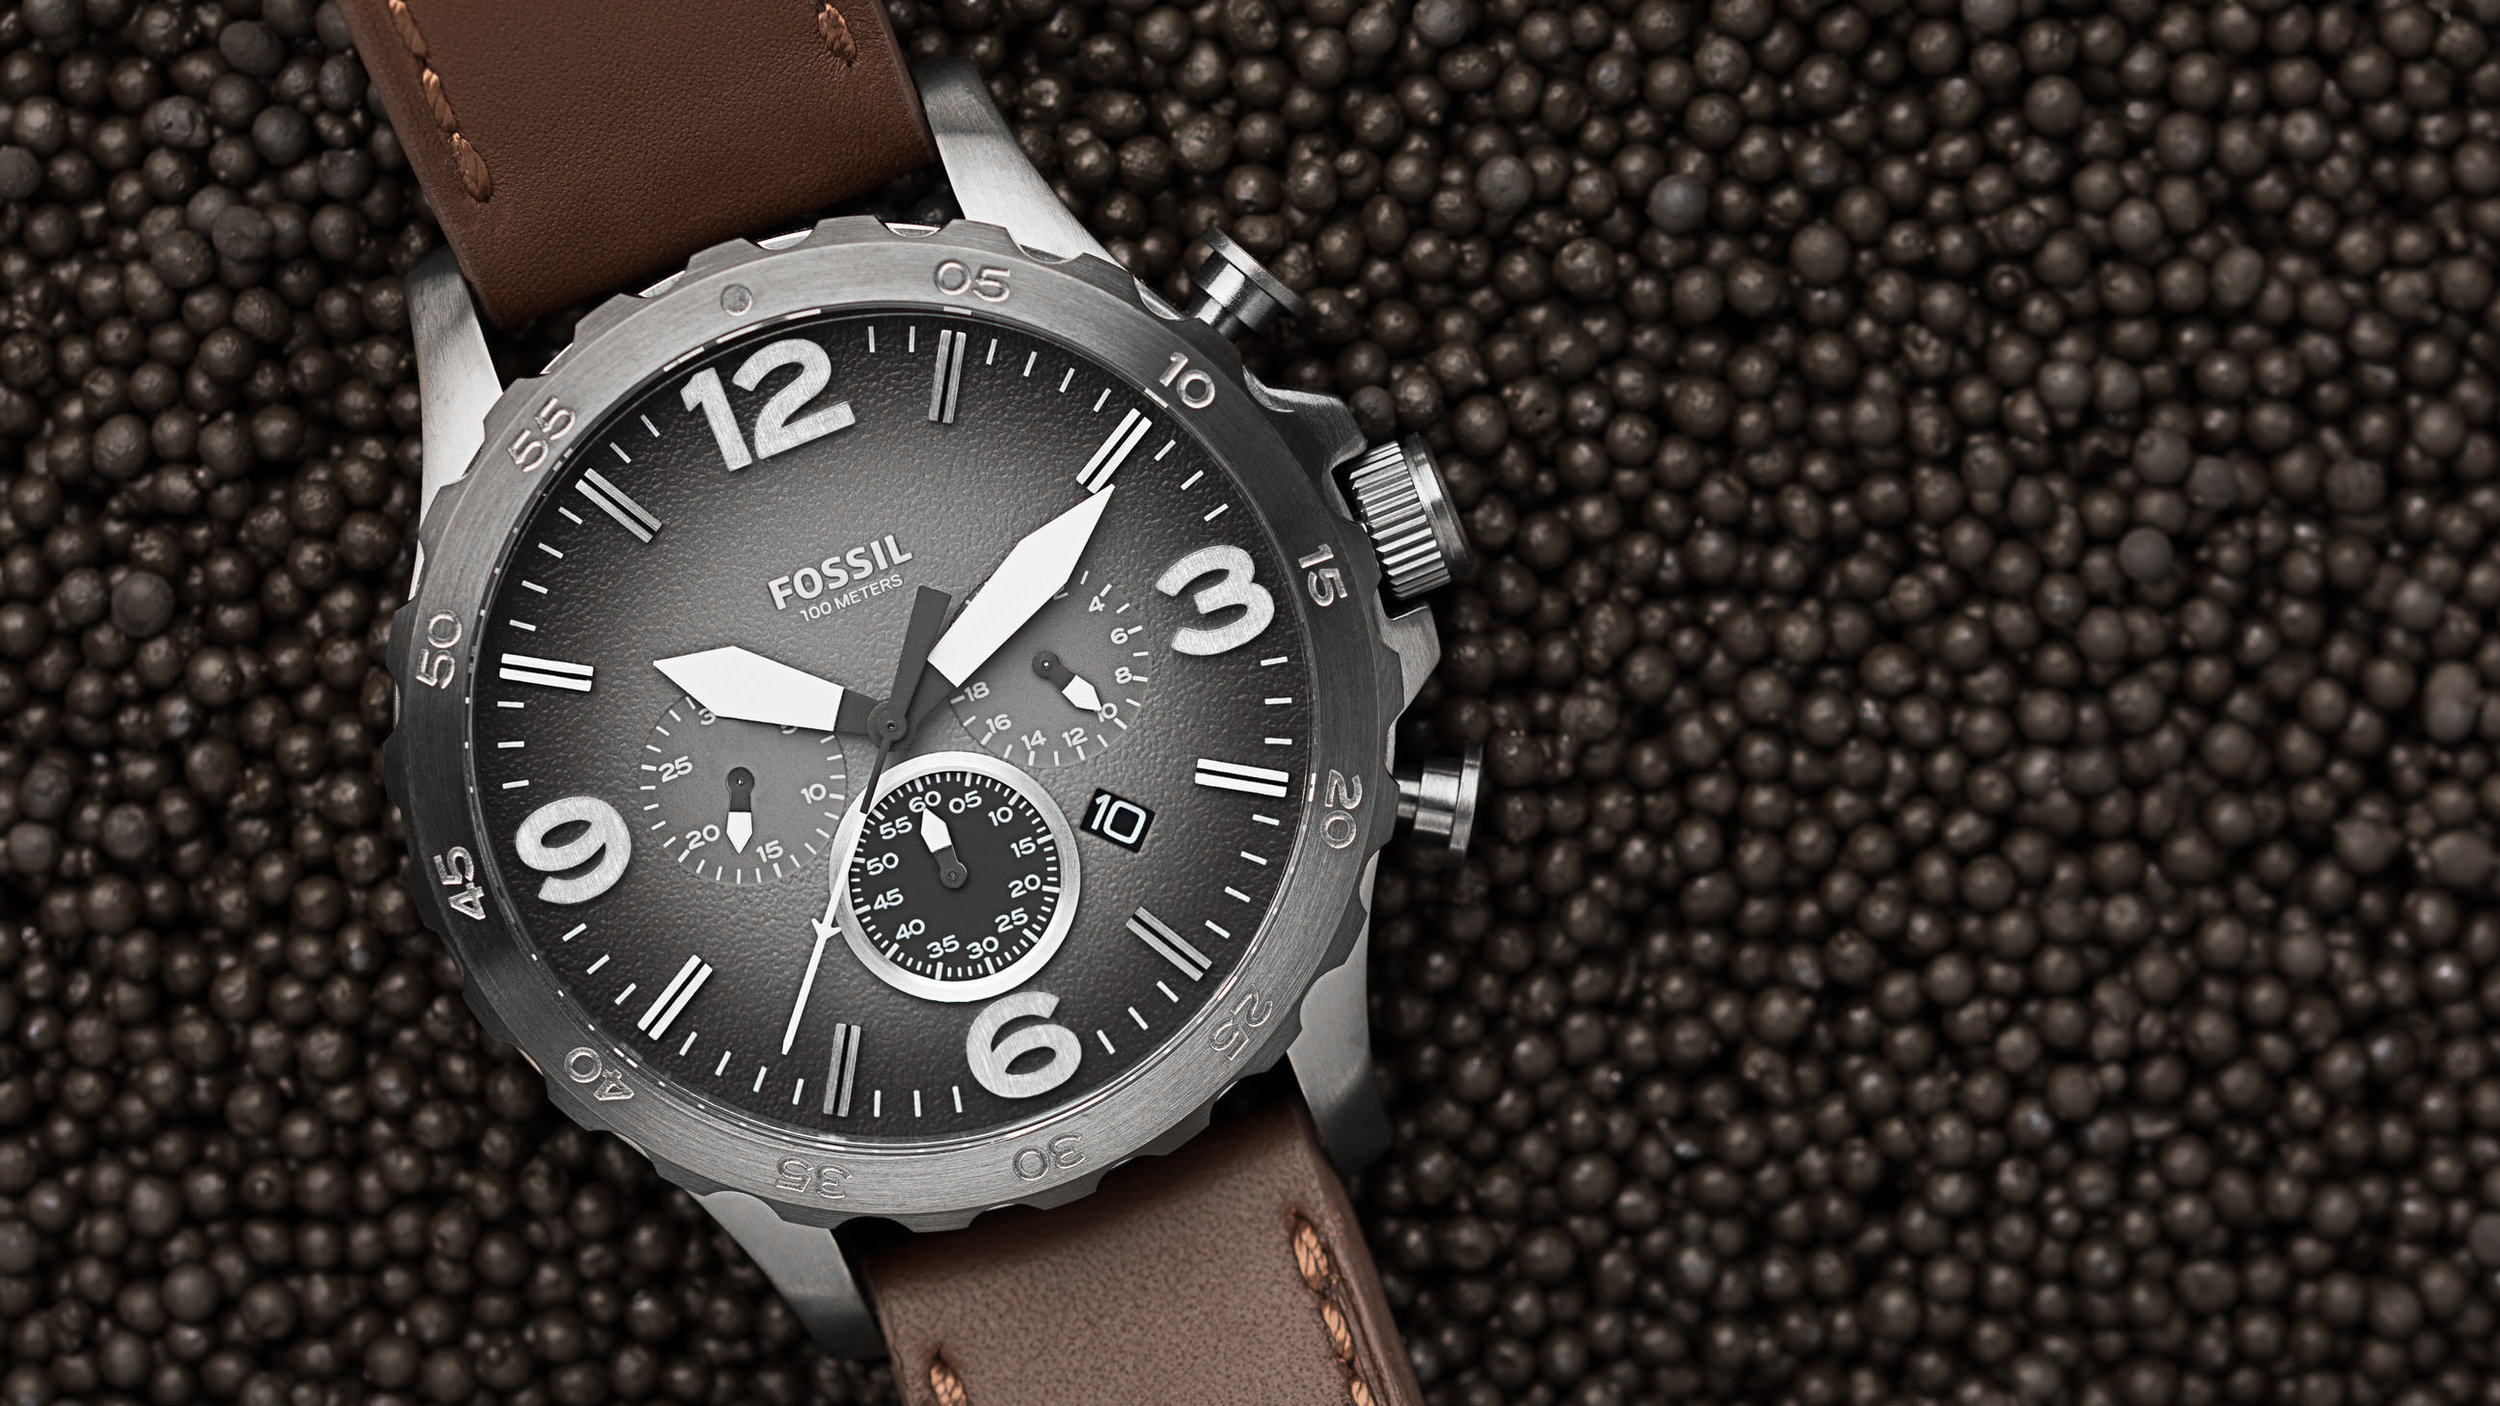 Fossil watch captured by Nashville Commercial Photographers